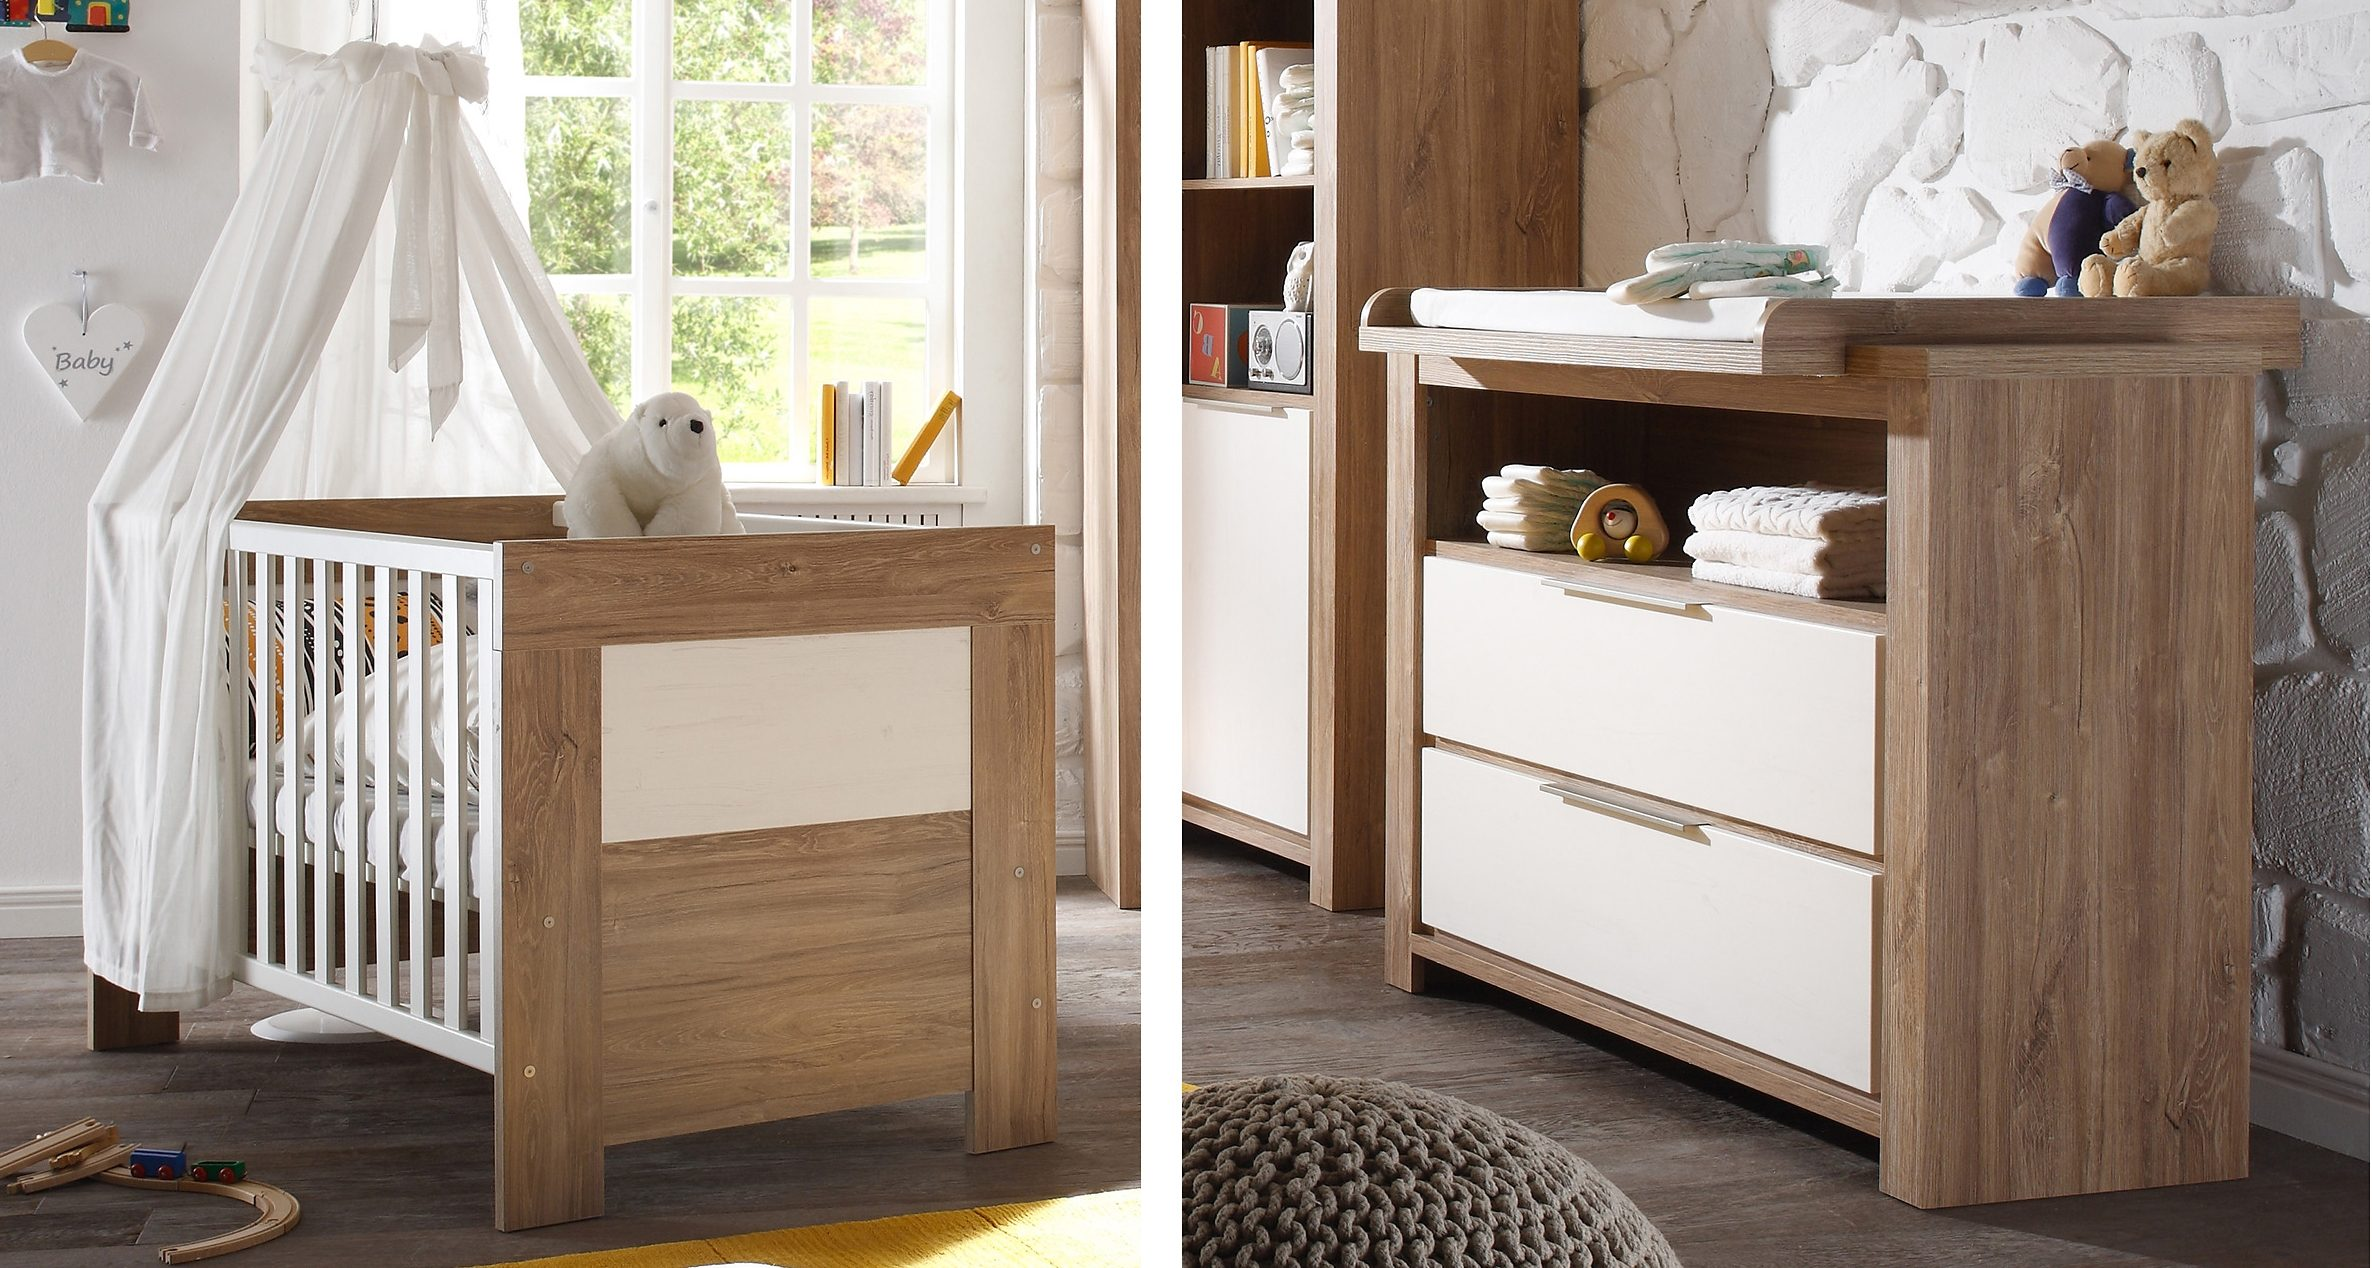 Spar-Set: Babybett und Wickelkommode »Granny«, in stirling oak/ anderson pine